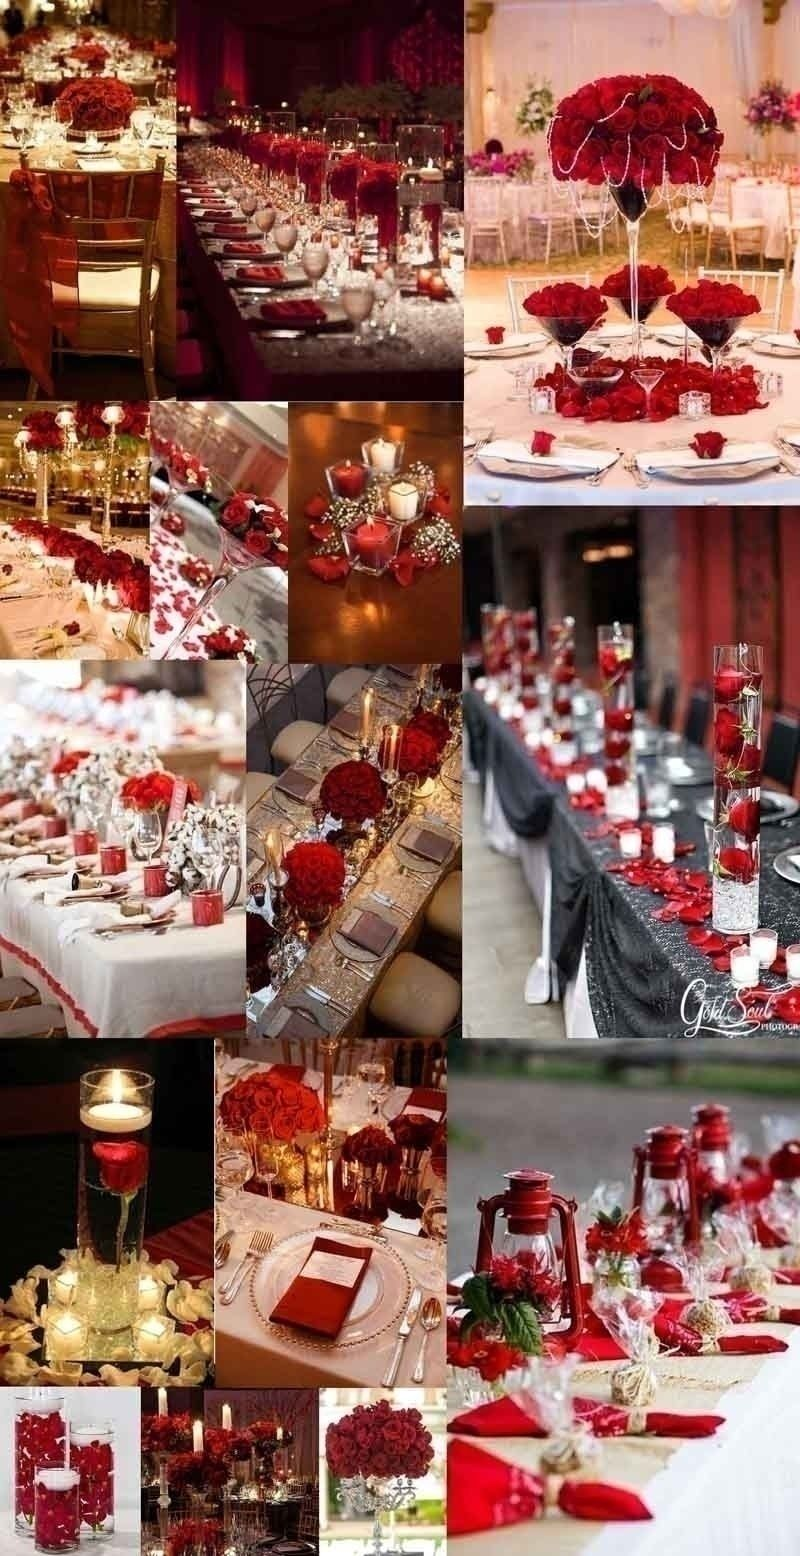 SummerWeddingSeries   Spectacular Wedding Table Decorations and Centrepieces for the Most Popular Summer Wedding Themes is part of Grey wedding decor - Summer wedding table decorations and unique centrepiece ideas that is sure to leave your guests speechless